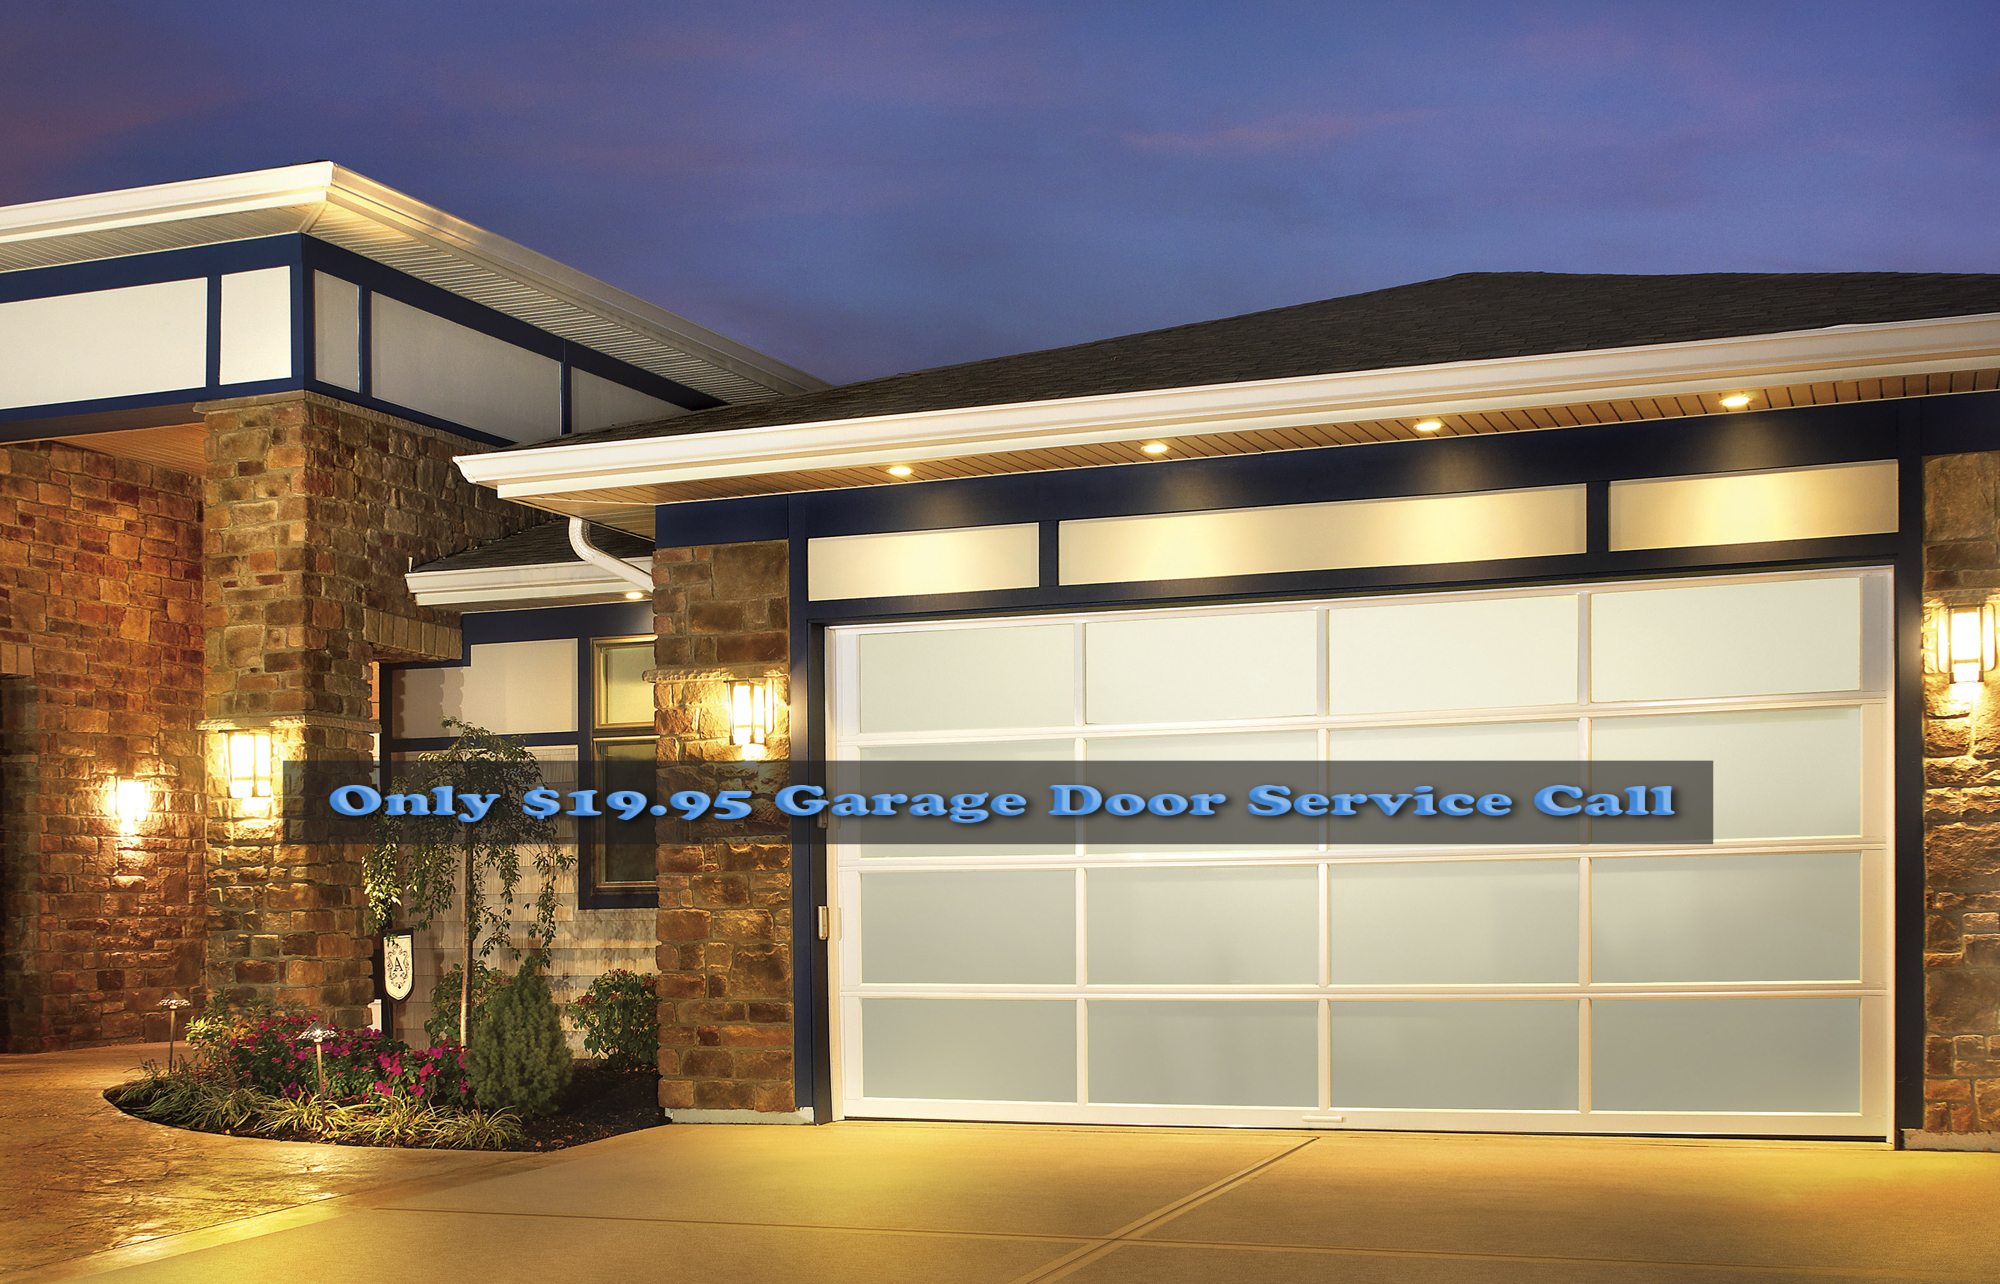 Explore Glass Garage Door, Garage Door Repair And More!